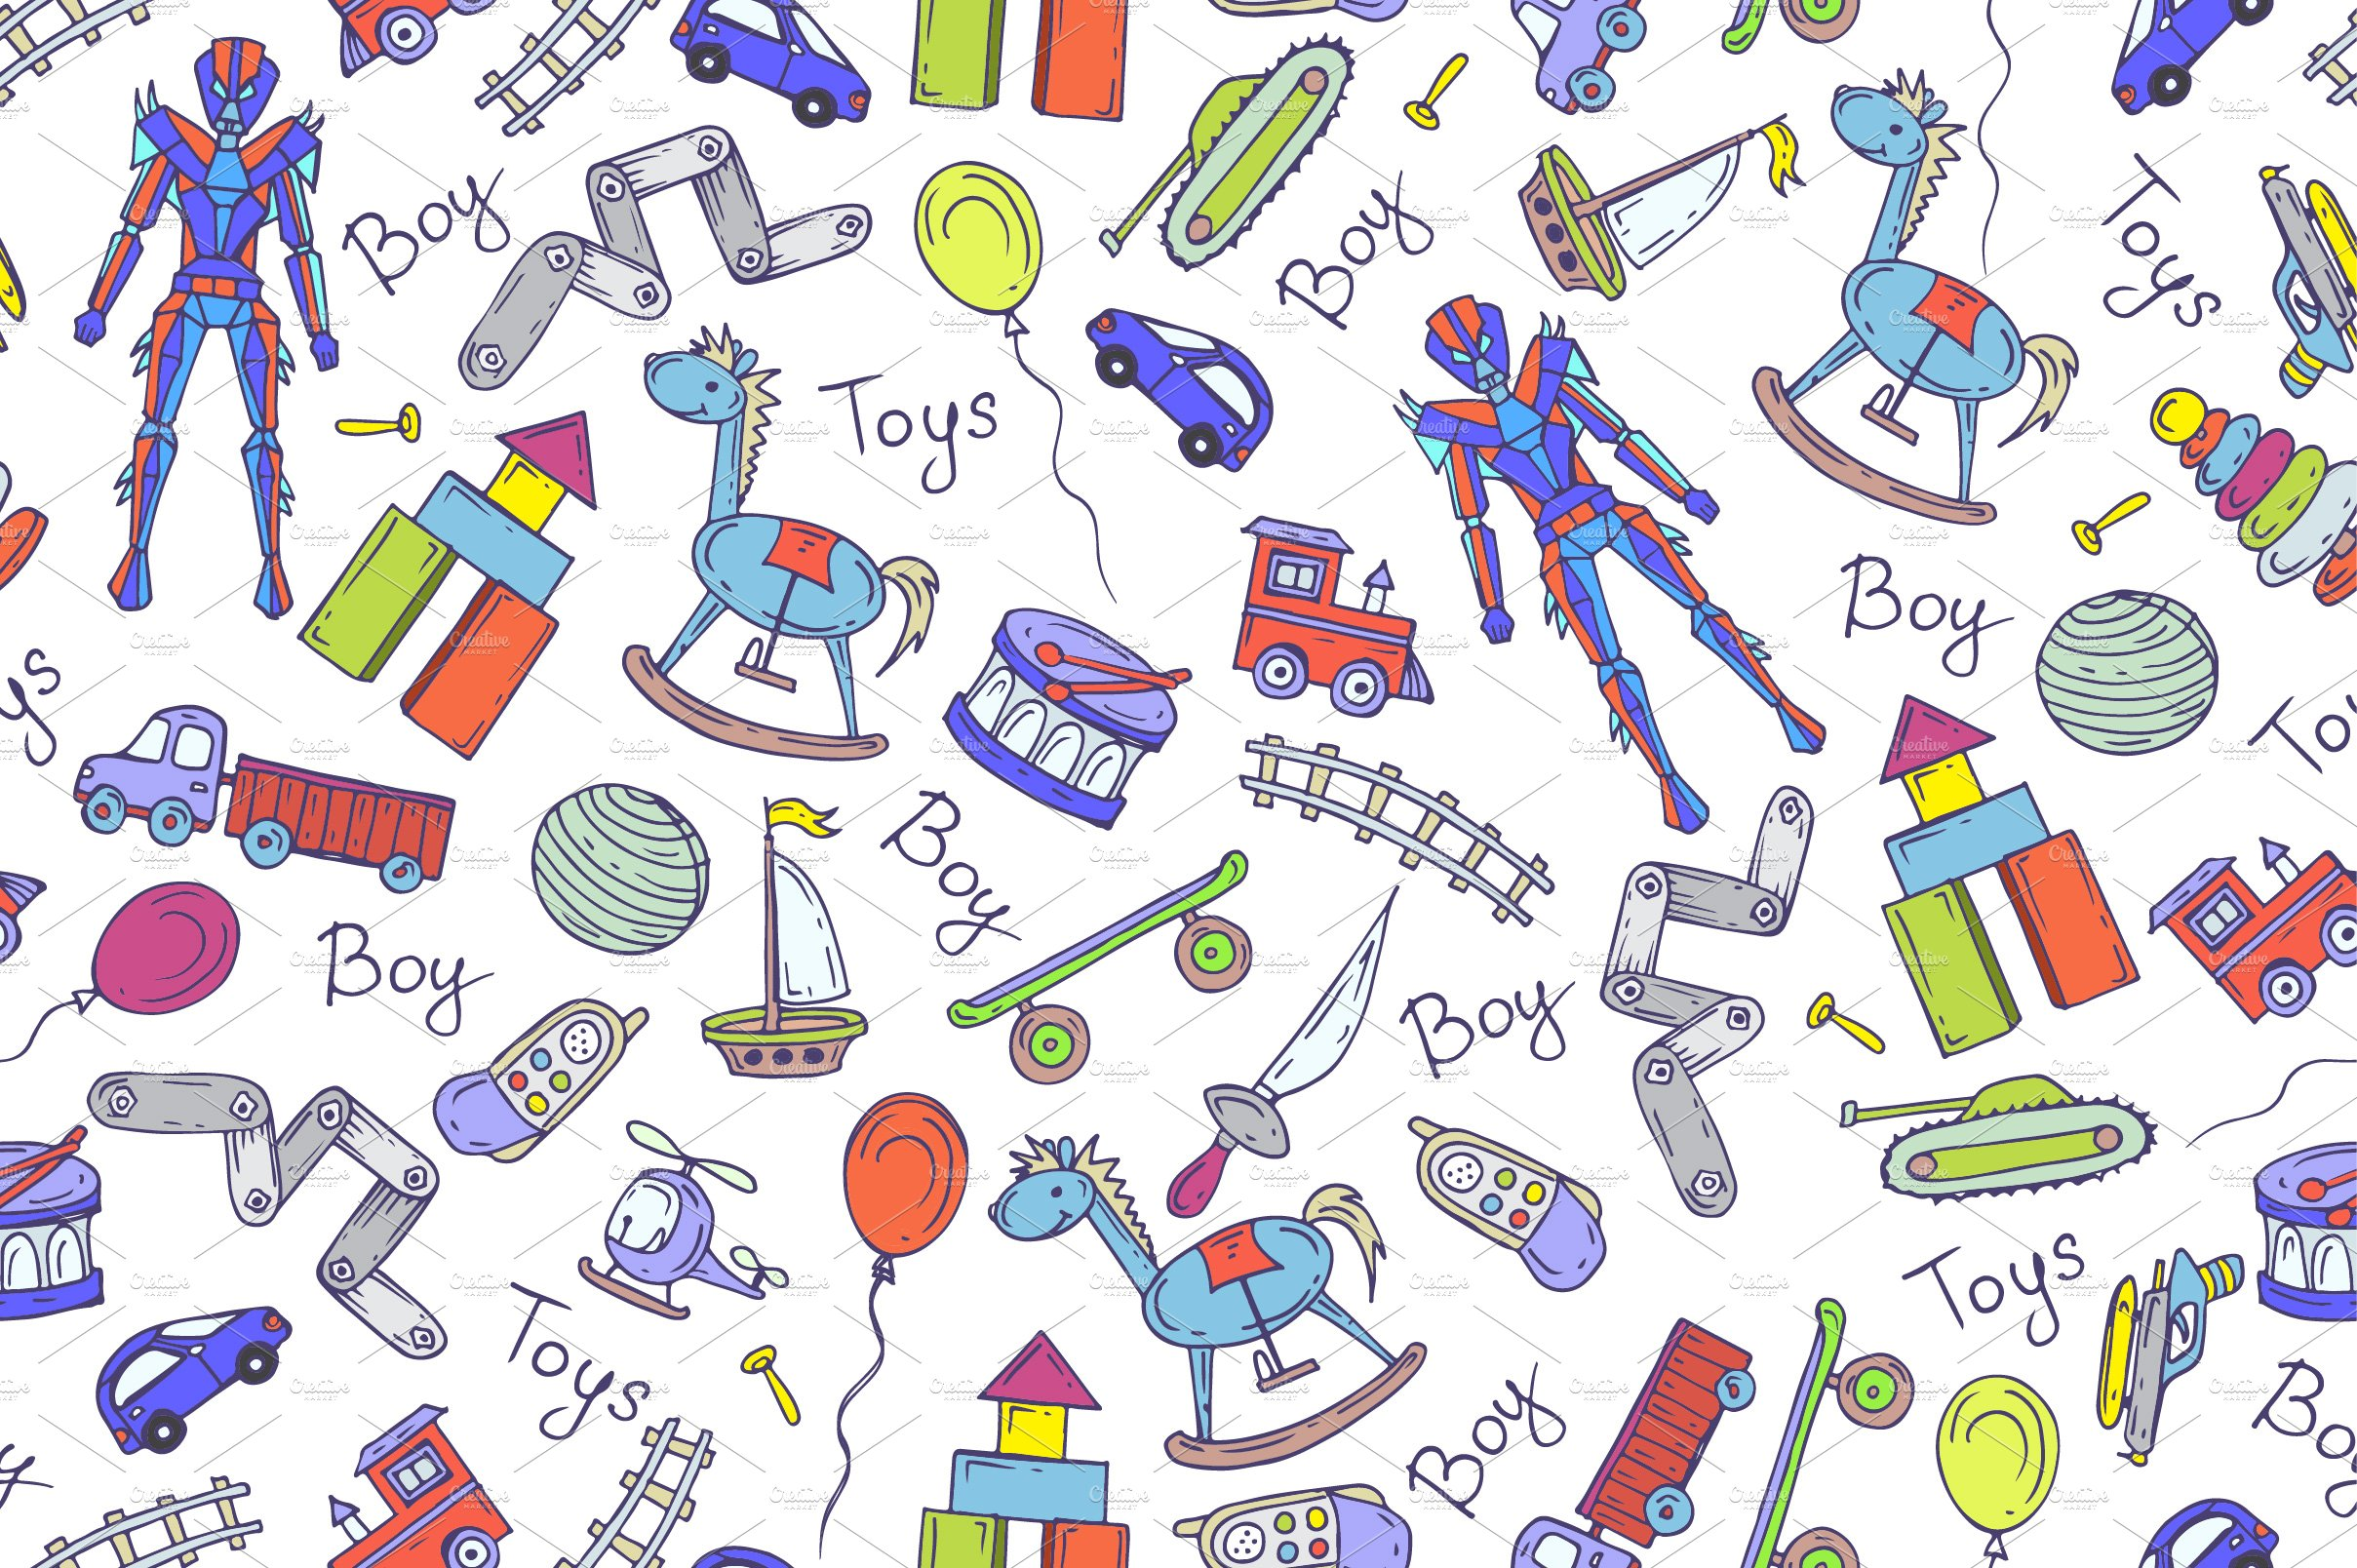 Boy Toys Background : Pattern with hand drawn toys for boy patterns creative